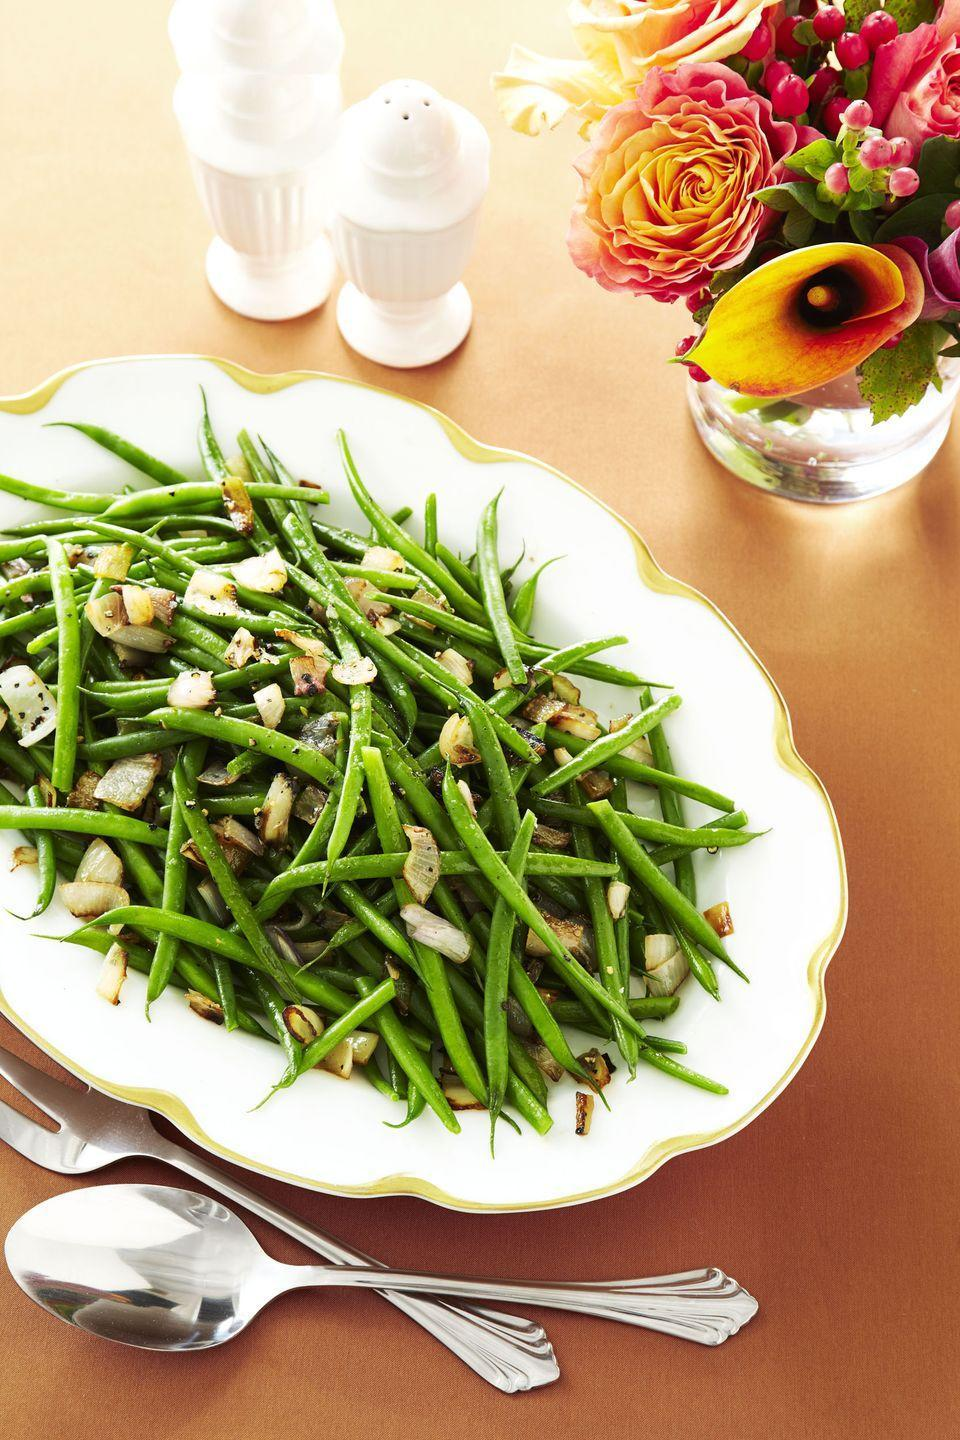 "<p>Leave it to Ina to find a way to make these often-overlook veggies the standout dish on the dinner table. Seriously, try them for yourself.</p><p><em><a href=""https://www.goodhousekeeping.com/food-recipes/a11210/string-beans-shallots-recipe-ghk1111/"" rel=""nofollow noopener"" target=""_blank"" data-ylk=""slk:Get the recipe for String Beans with Shallots »"" class=""link rapid-noclick-resp"">Get the recipe for String Beans with Shallots »</a></em></p><p><strong>RELATED: </strong><a href=""https://www.goodhousekeeping.com/holidays/thanksgiving-ideas/g803/green-beans/"" rel=""nofollow noopener"" target=""_blank"" data-ylk=""slk:32 Green Bean Recipes That Will Make These Veggies the Life of the Party"" class=""link rapid-noclick-resp"">32 Green Bean Recipes That Will Make These Veggies the Life of the Party</a></p>"